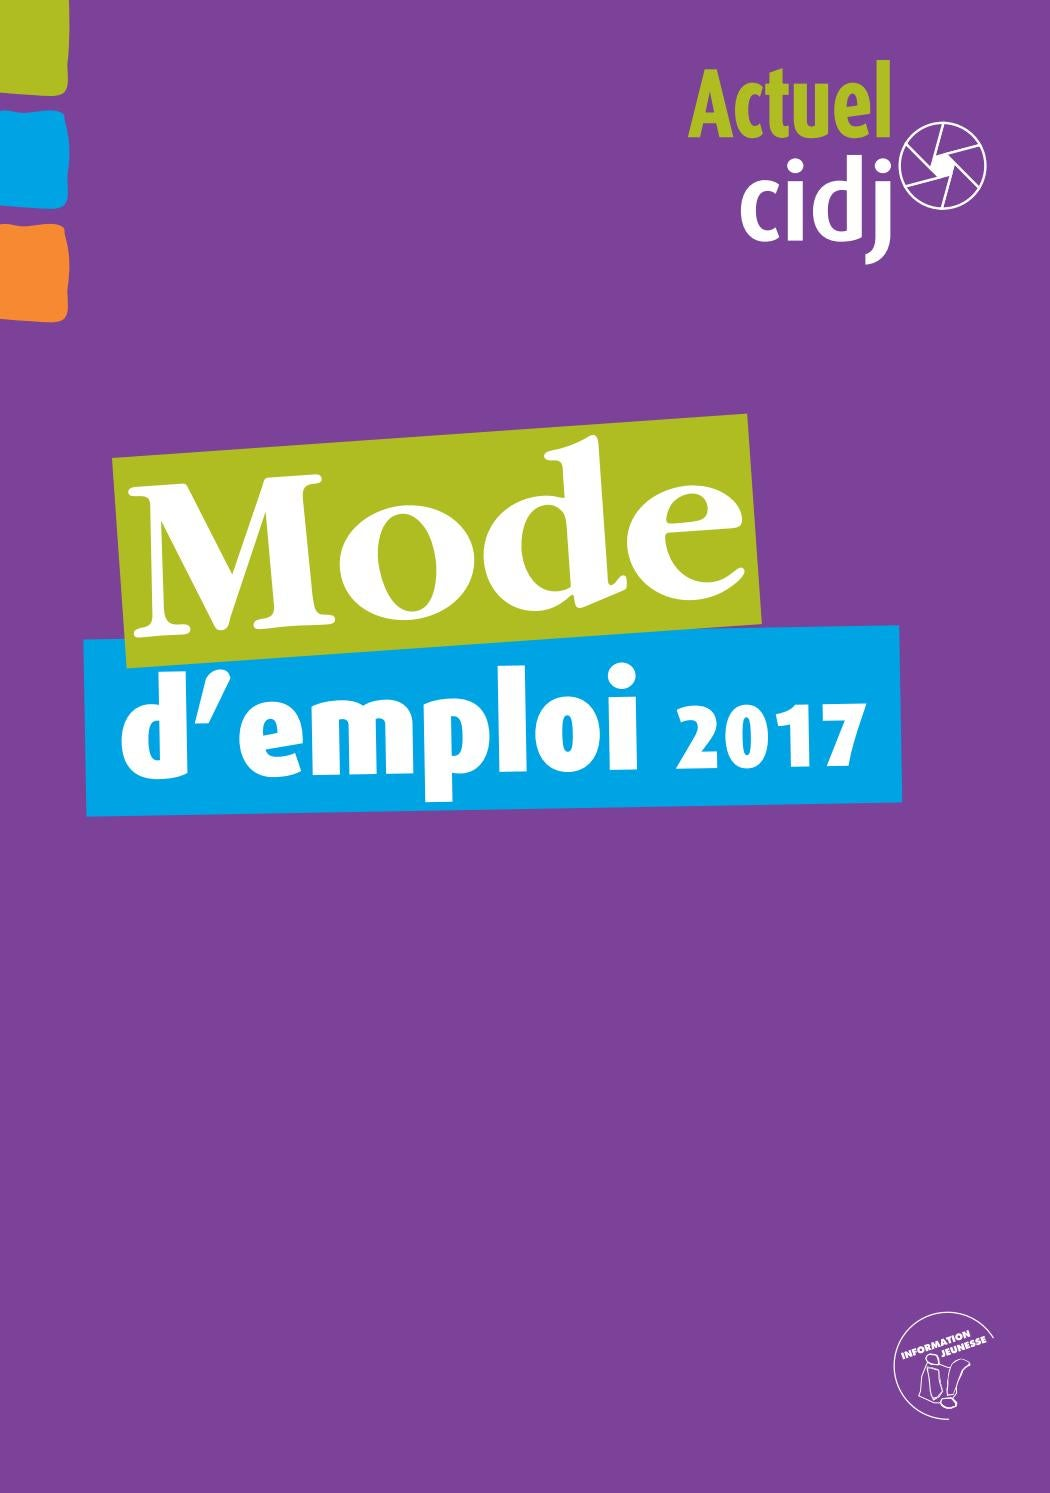 mode d 39 emploi actuel cidj 2017 by jfplo issuu. Black Bedroom Furniture Sets. Home Design Ideas